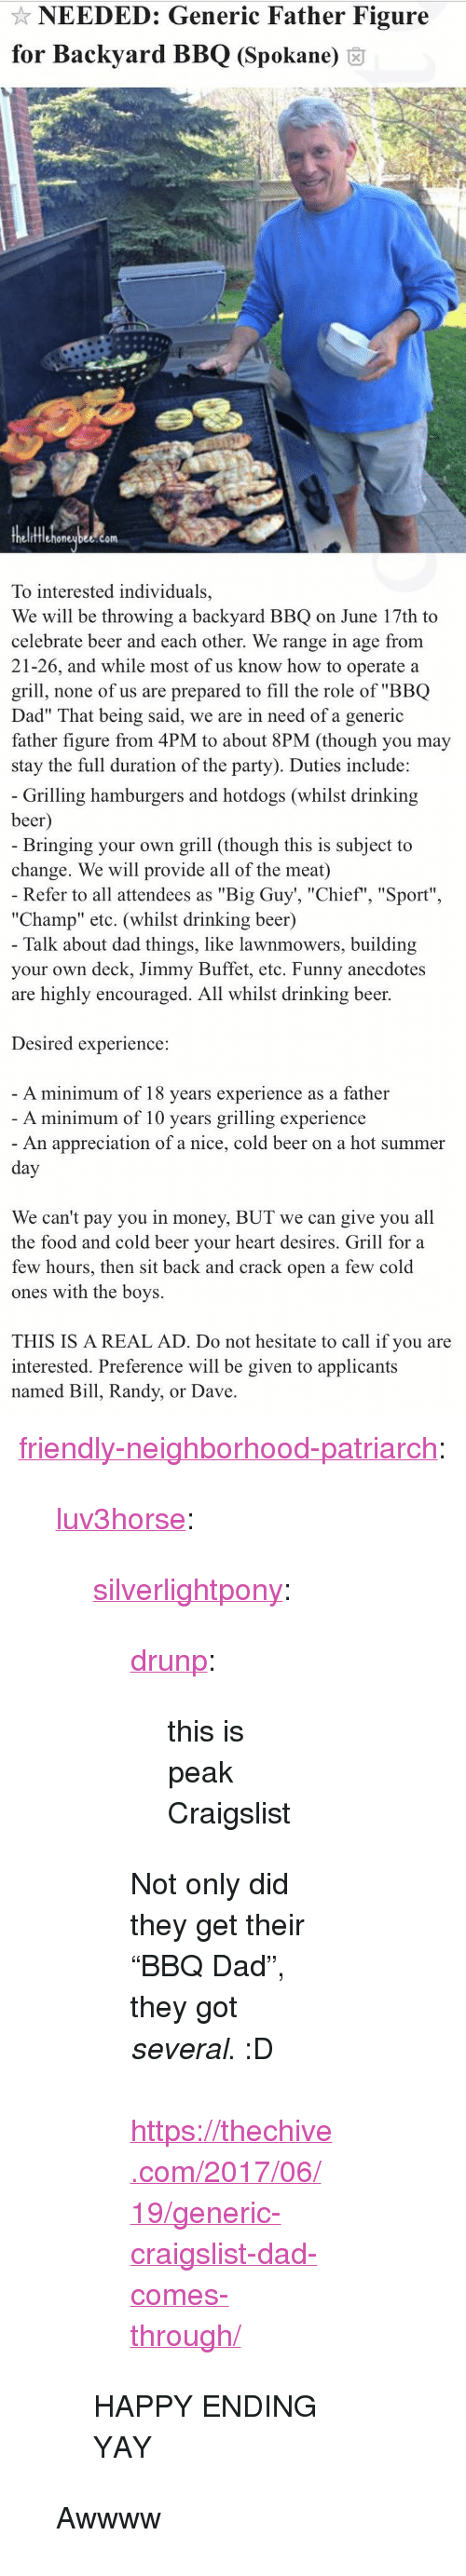 "Beer, Craigslist, and Dad: NEEDED: Generic Father Figure  for Backyard BBQ (Spokane) 6  fflehoneubee.com  To interested individuals,  We will be throwing a backyard BBQ on June 17th to  celebrate beer and each other. We range in age from  21-26, and while most of us know how to operate a  grill, none of us are prepared to fill the role of ""BBQ  Dad"" That being said, we are in need of a generic  father figure from 4PM to about 8PM (though you may  stay the full duration of the party). Duties include:   Grilling hamburgers and hotdogs (whilst drinking  beer  Bringing your own grill (though this is subject to  change. We will provide all of the meat)  Refer to all attendees as ""Big Guy', ""Chief"", ""Sport""  ""Champ"" etc. (whilst drinking beer)  Talk about dad things, like lawnmowers, building  your own deck, Jimmy Buffet, etc. Funny anecdotes  are highly encouraged. All whilst drinking beer.  Desired experience:  A minimum of 18 vears experience as a father  A minimum of 10 years grilling experience  An appreciation of a nice, cold beer on a hot summer  We can't pay you in money, BUT we can give you all  the food and cold beer vour heart desires. Grill for a  few hours, then sit back and crack open a few cold  ones with the boys.  THIS IS A REAL AD. Do not hesitate to call if you are  interested. Preference will be given to applicants  named Bill, Randy, or Dave <p><a href=""http://friendly-neighborhood-patriarch.tumblr.com/post/170766193952/luv3horse-silverlightpony-drunp-this-is"" class=""tumblr_blog"">friendly-neighborhood-patriarch</a>:</p><blockquote> <p><a href=""http://luv3horse.tumblr.com/post/164653478181/silverlightpony-drunp-this-is-peak-craigslist"" class=""tumblr_blog"">luv3horse</a>:</p> <blockquote> <p><a href=""https://silverlightpony.tumblr.com/post/162259709552/drunp-this-is-peak-craigslist-not-only-did-they"" class=""tumblr_blog"">silverlightpony</a>:</p>  <blockquote> <p><a href=""https://drunp.tumblr.com/post/161376664752/this-is-peak-craigslist"" class=""tumblr_blog"">drunp</a>:</p> <blockquote><p>this is peak Craigslist</p></blockquote> <p>Not only did they get their ""BBQ Dad"", they got <i>several</i>.  :D<br/><br/><a href=""https://thechive.com/2017/06/19/generic-craigslist-dad-comes-through/"">https://thechive.com/2017/06/19/generic-craigslist-dad-comes-through/</a></p> </blockquote>  <p>HAPPY ENDING YAY</p> </blockquote>  <p>Awwww</p> </blockquote>"